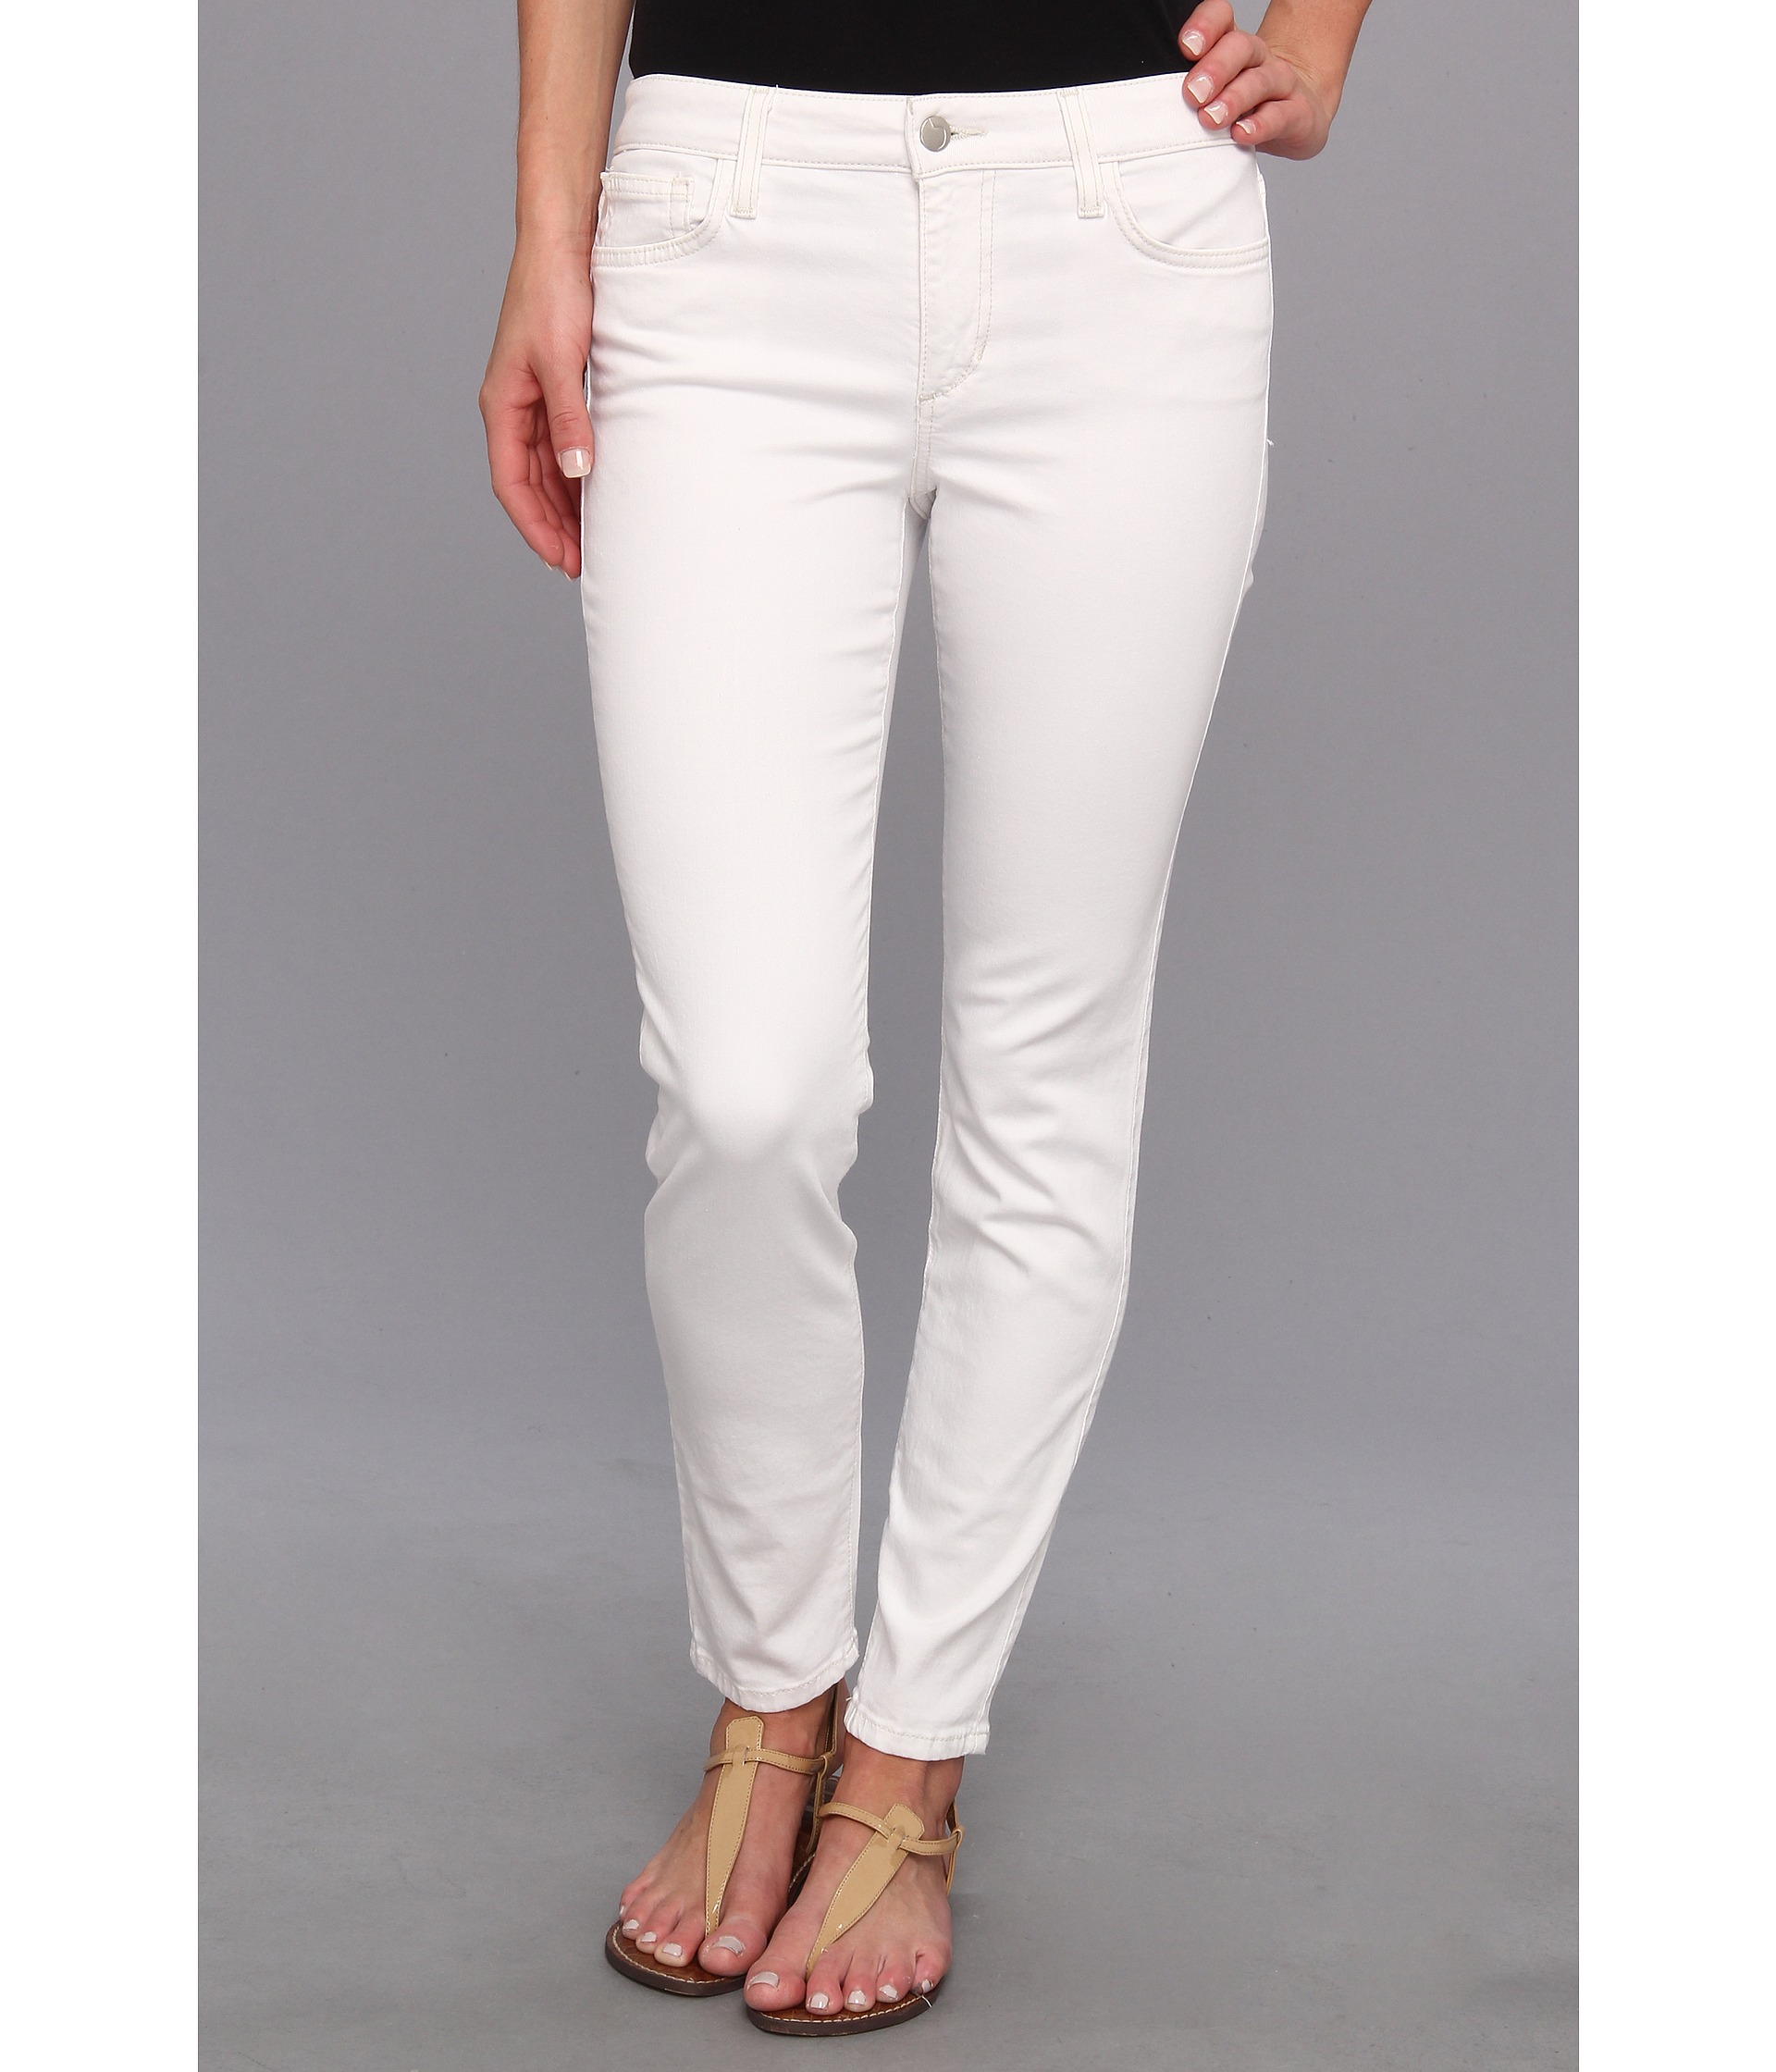 Joe's jeans Skinny Ankle in Pennie in White | Lyst